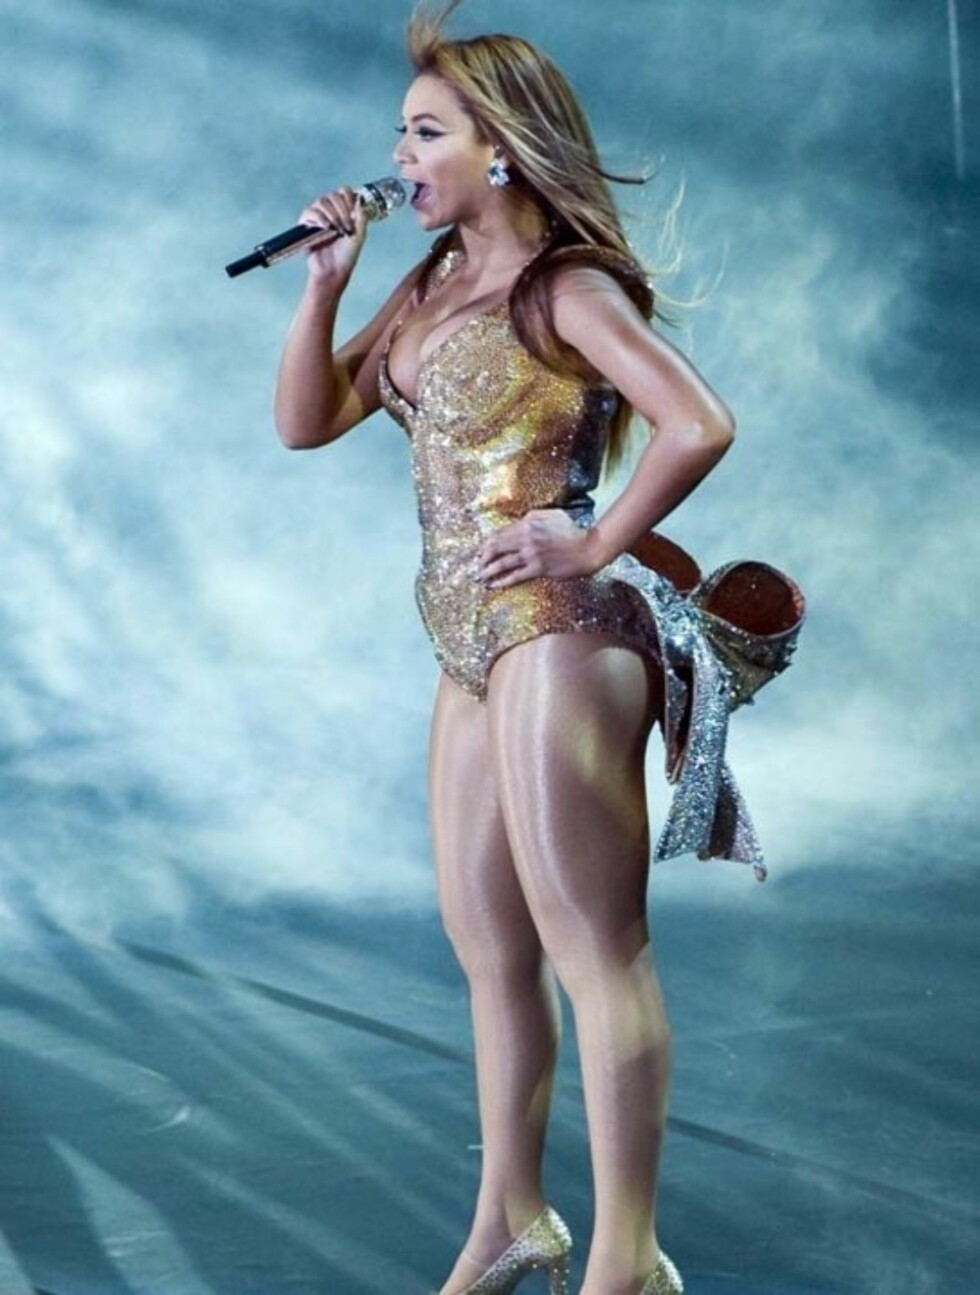 <strong>BEIJING,CHINA - OCTOBER 23, 2009:</strong>(CHINA OUT)US. singer Beyonce Knowles performs at her concert, Beijing, October 23, 2009.  Photo by CNImaging Code: 4049 COPYRIGHT STELLA PICTURES Foto: Stella Pictures